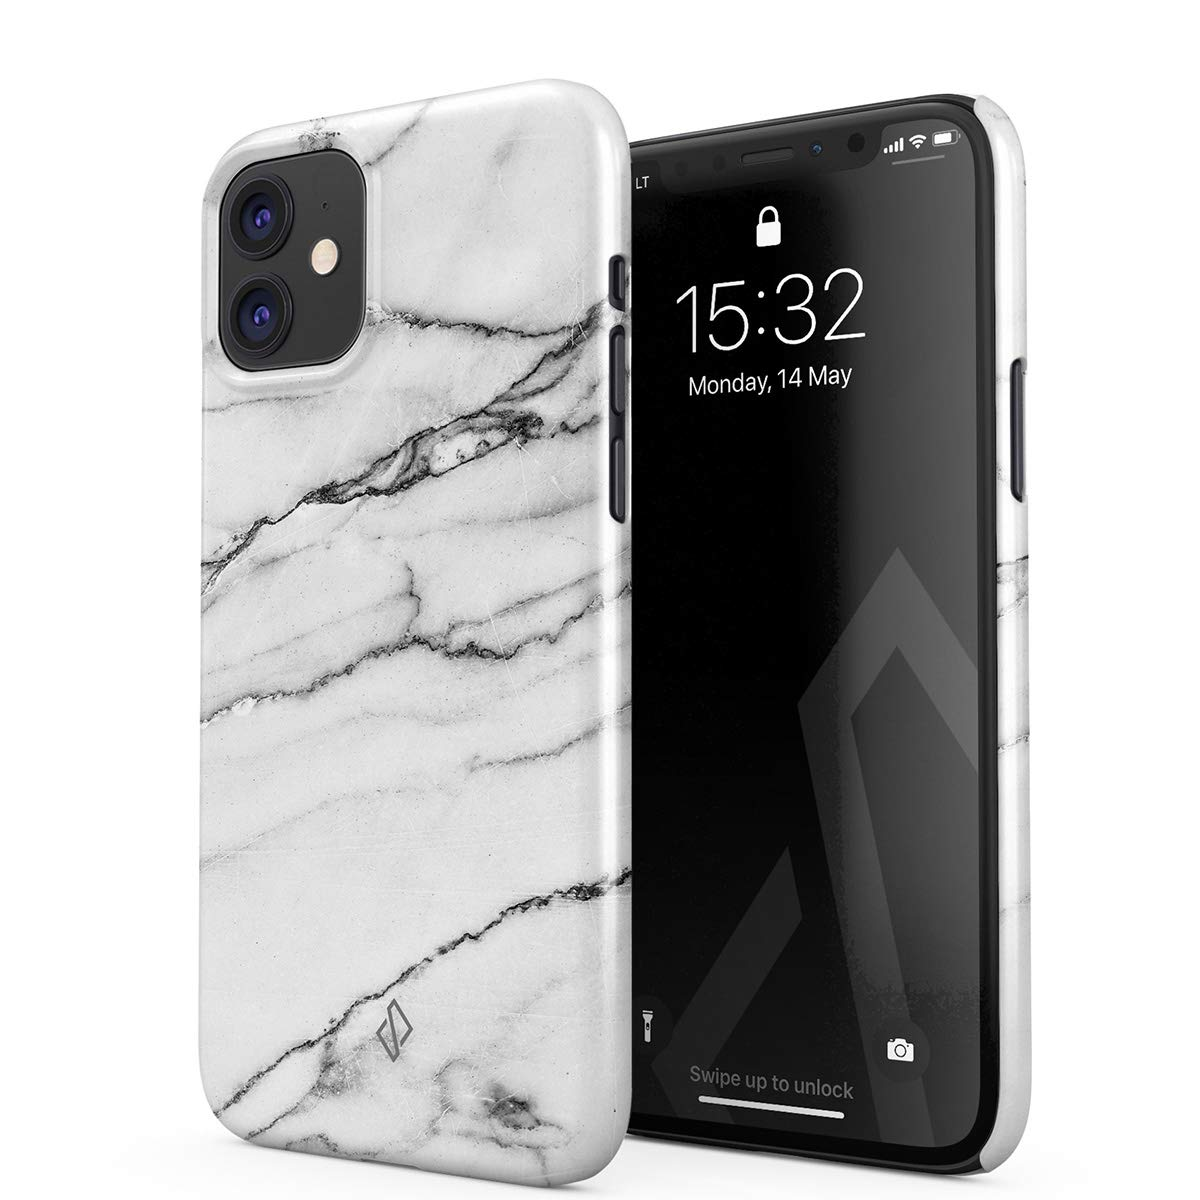 BURGA Phone Case Compatible with iPhone 11 - Silver Flakes Grey White Marble Cute Case for Girls Thin Design Durable Hard Shell Plastic Protective Case